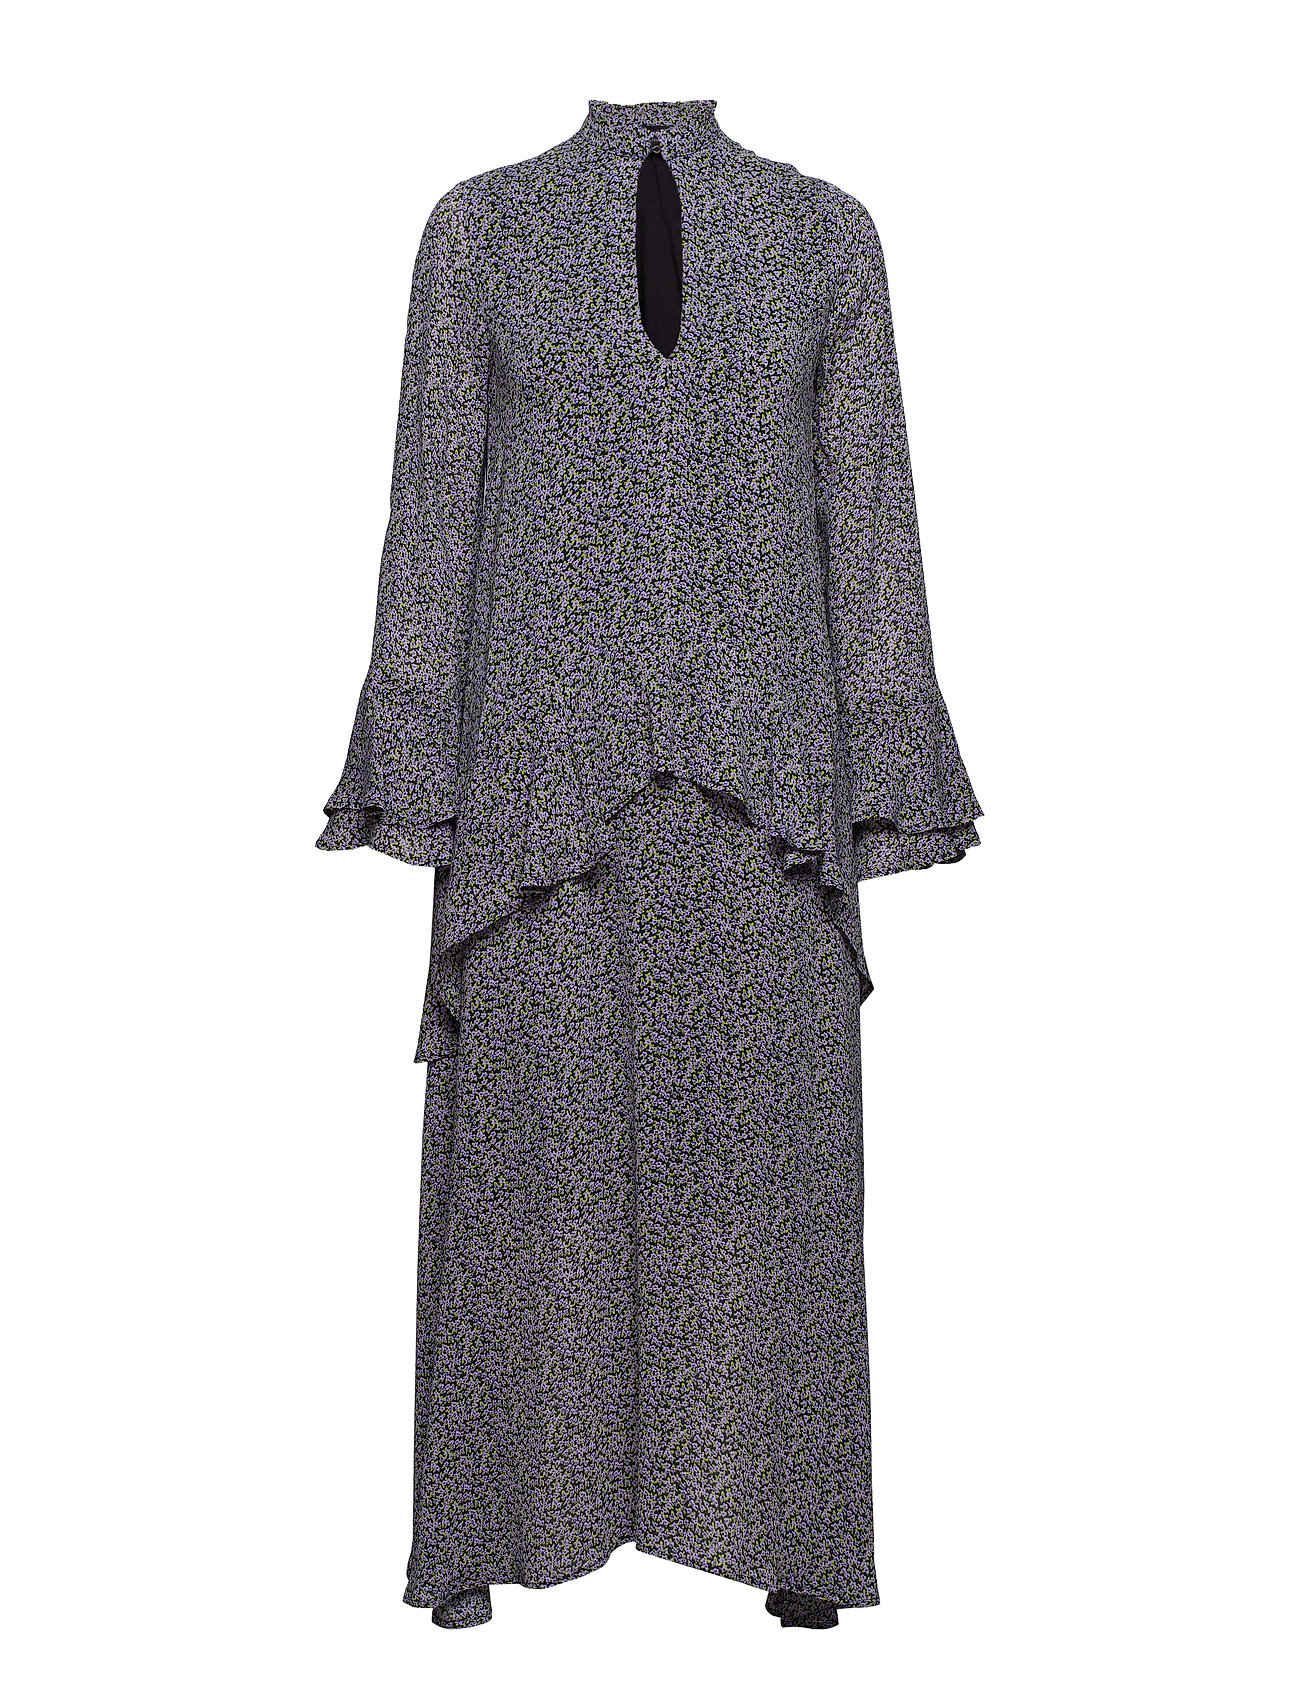 Birgitte Herskind Sienna Dress - AOP 135